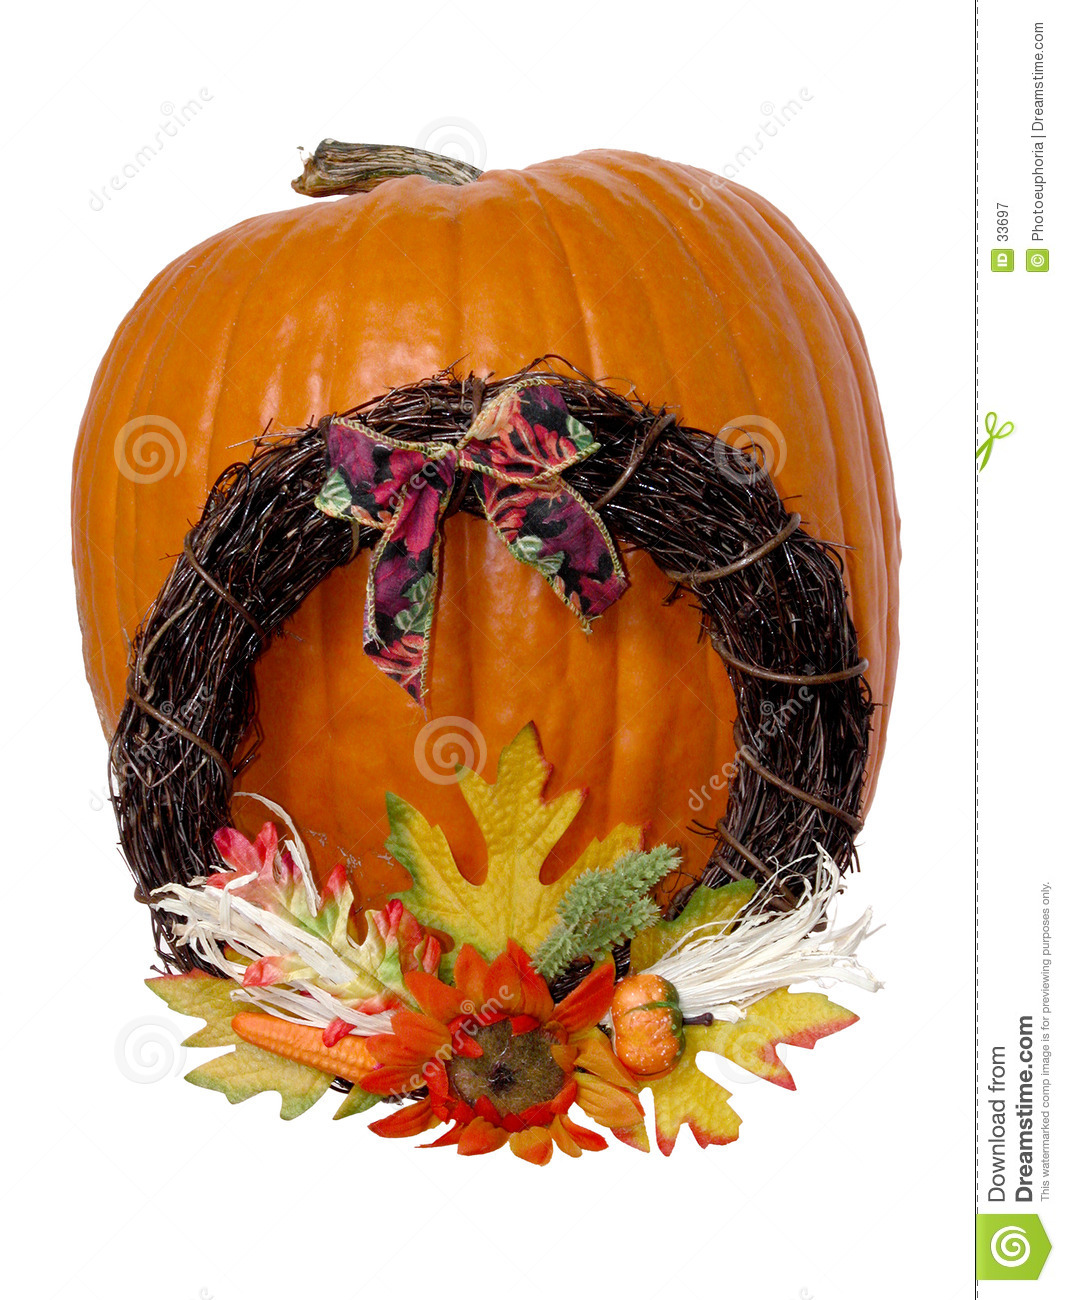 Holiday: Large Pumpkin & Wreath